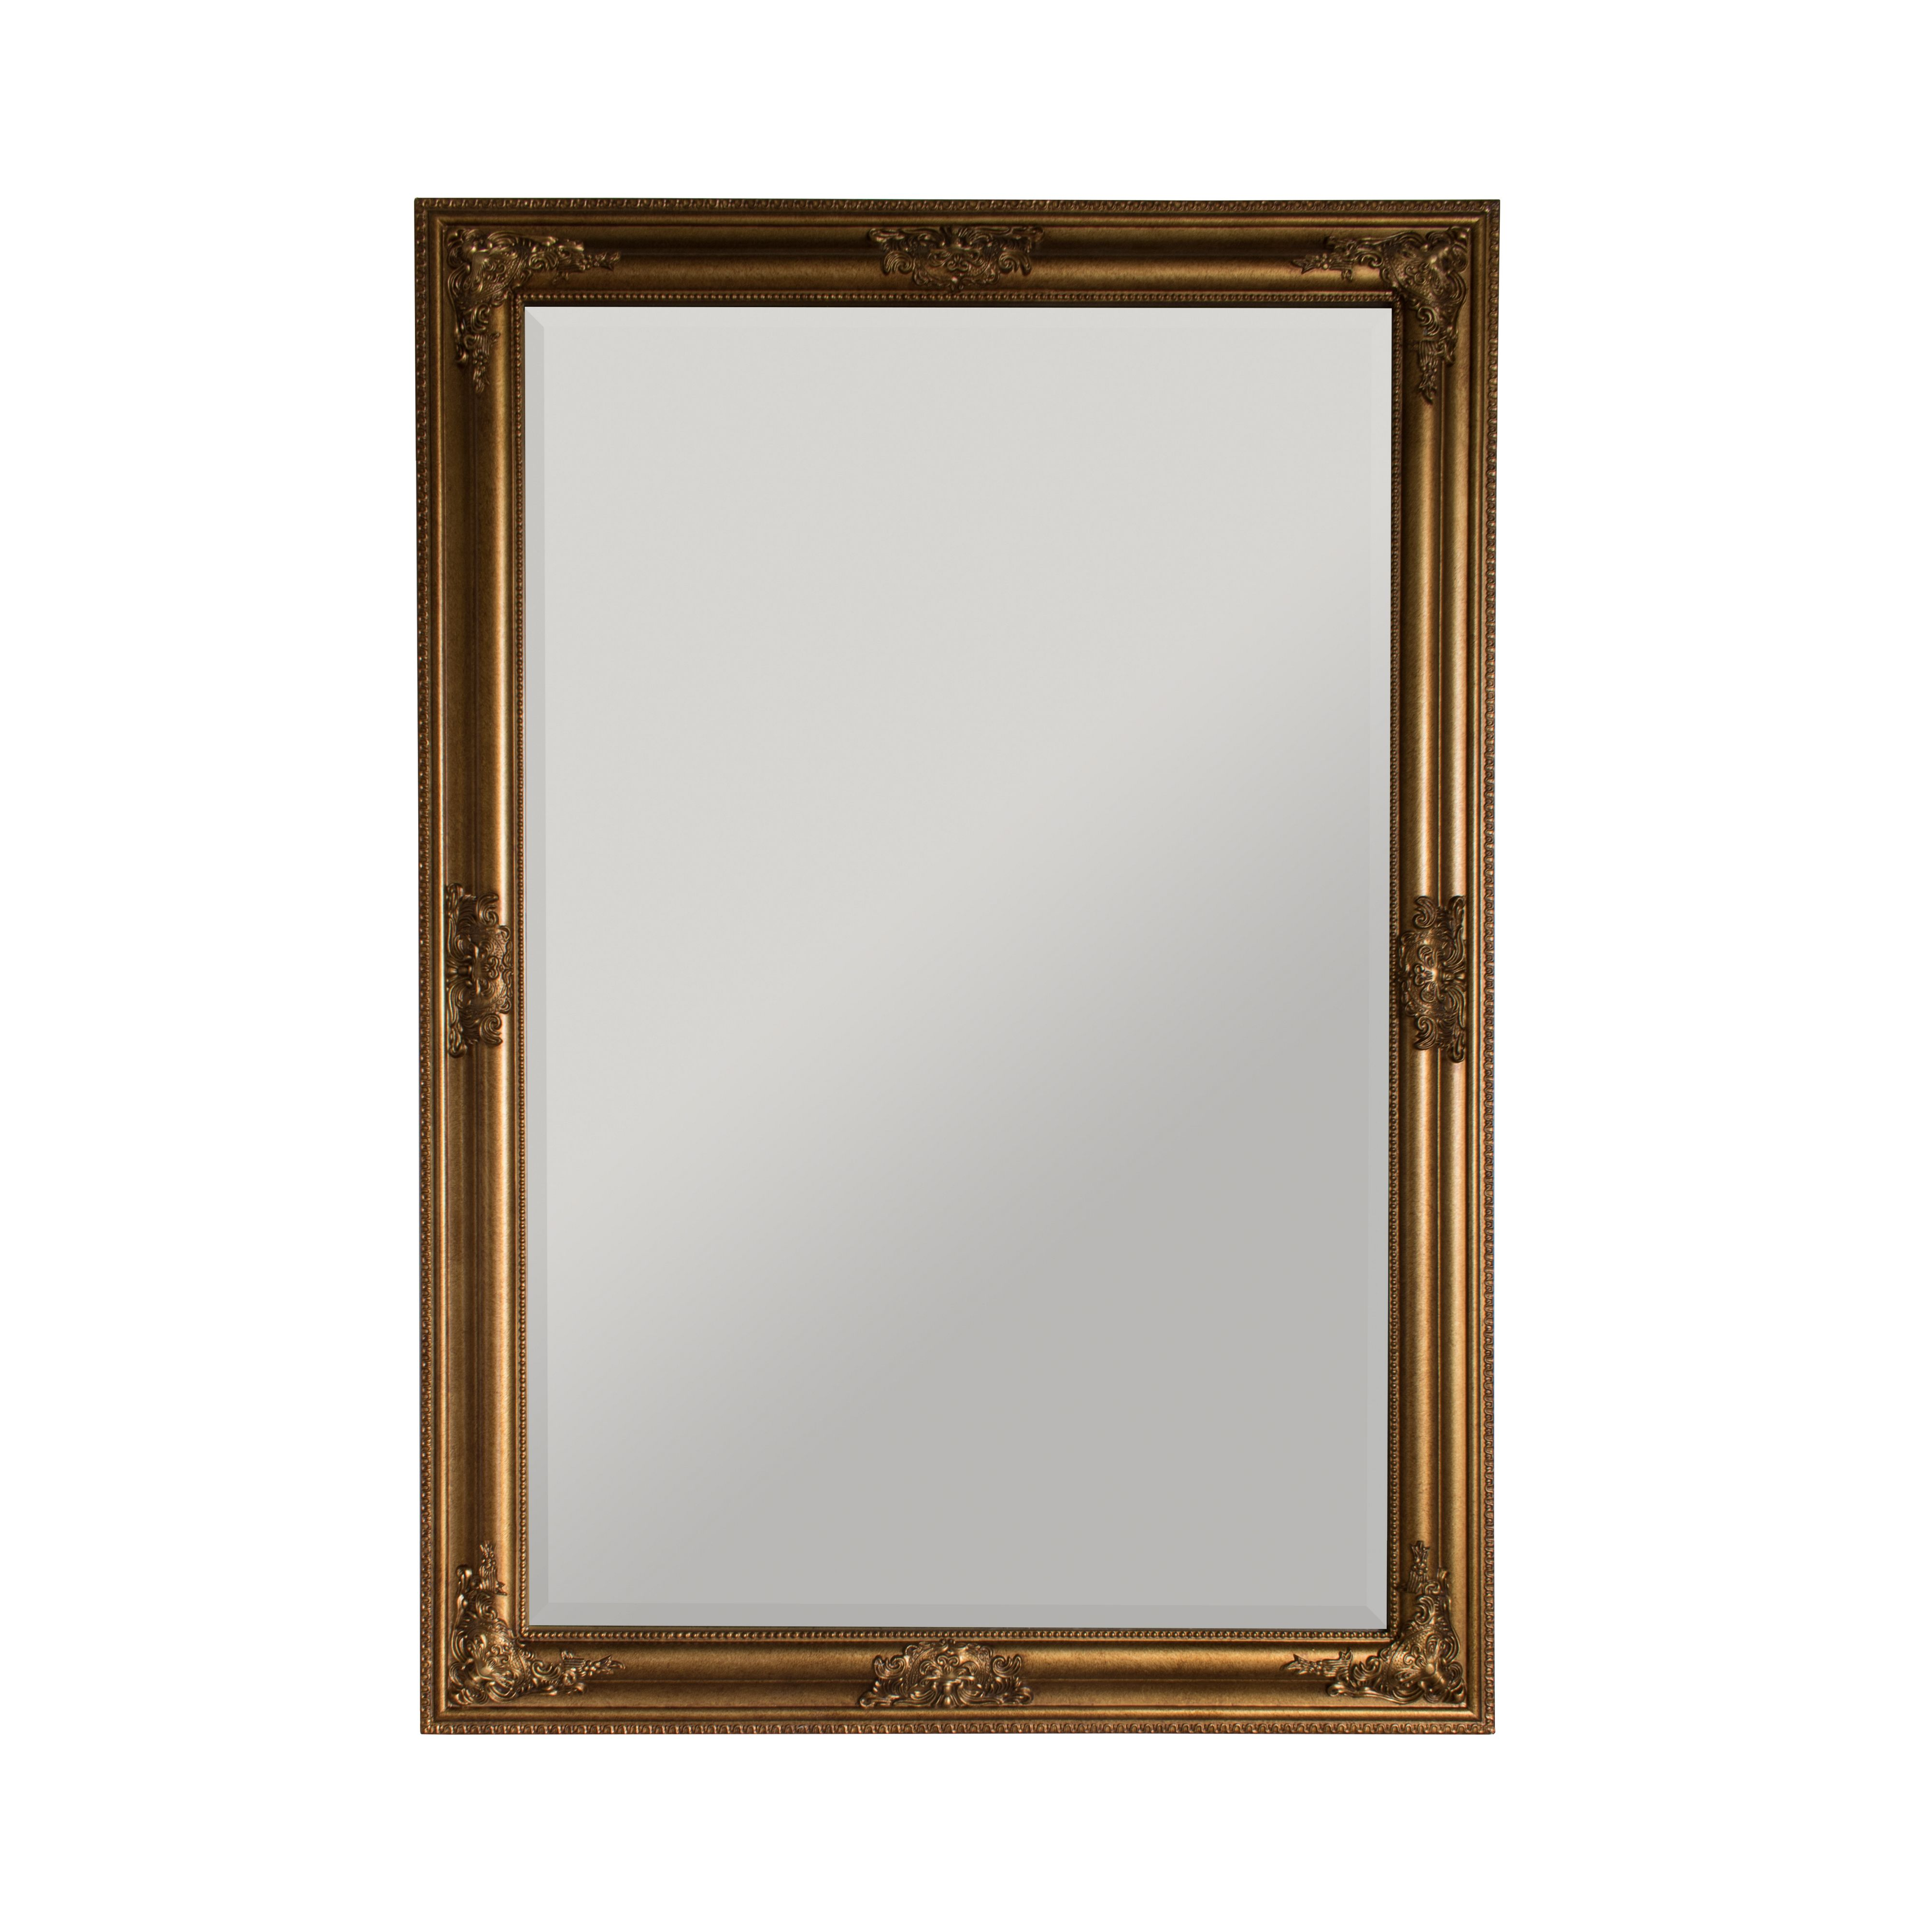 Linea florence gold mirror 60 x 90cm gold octer for Miroir 150 x 60